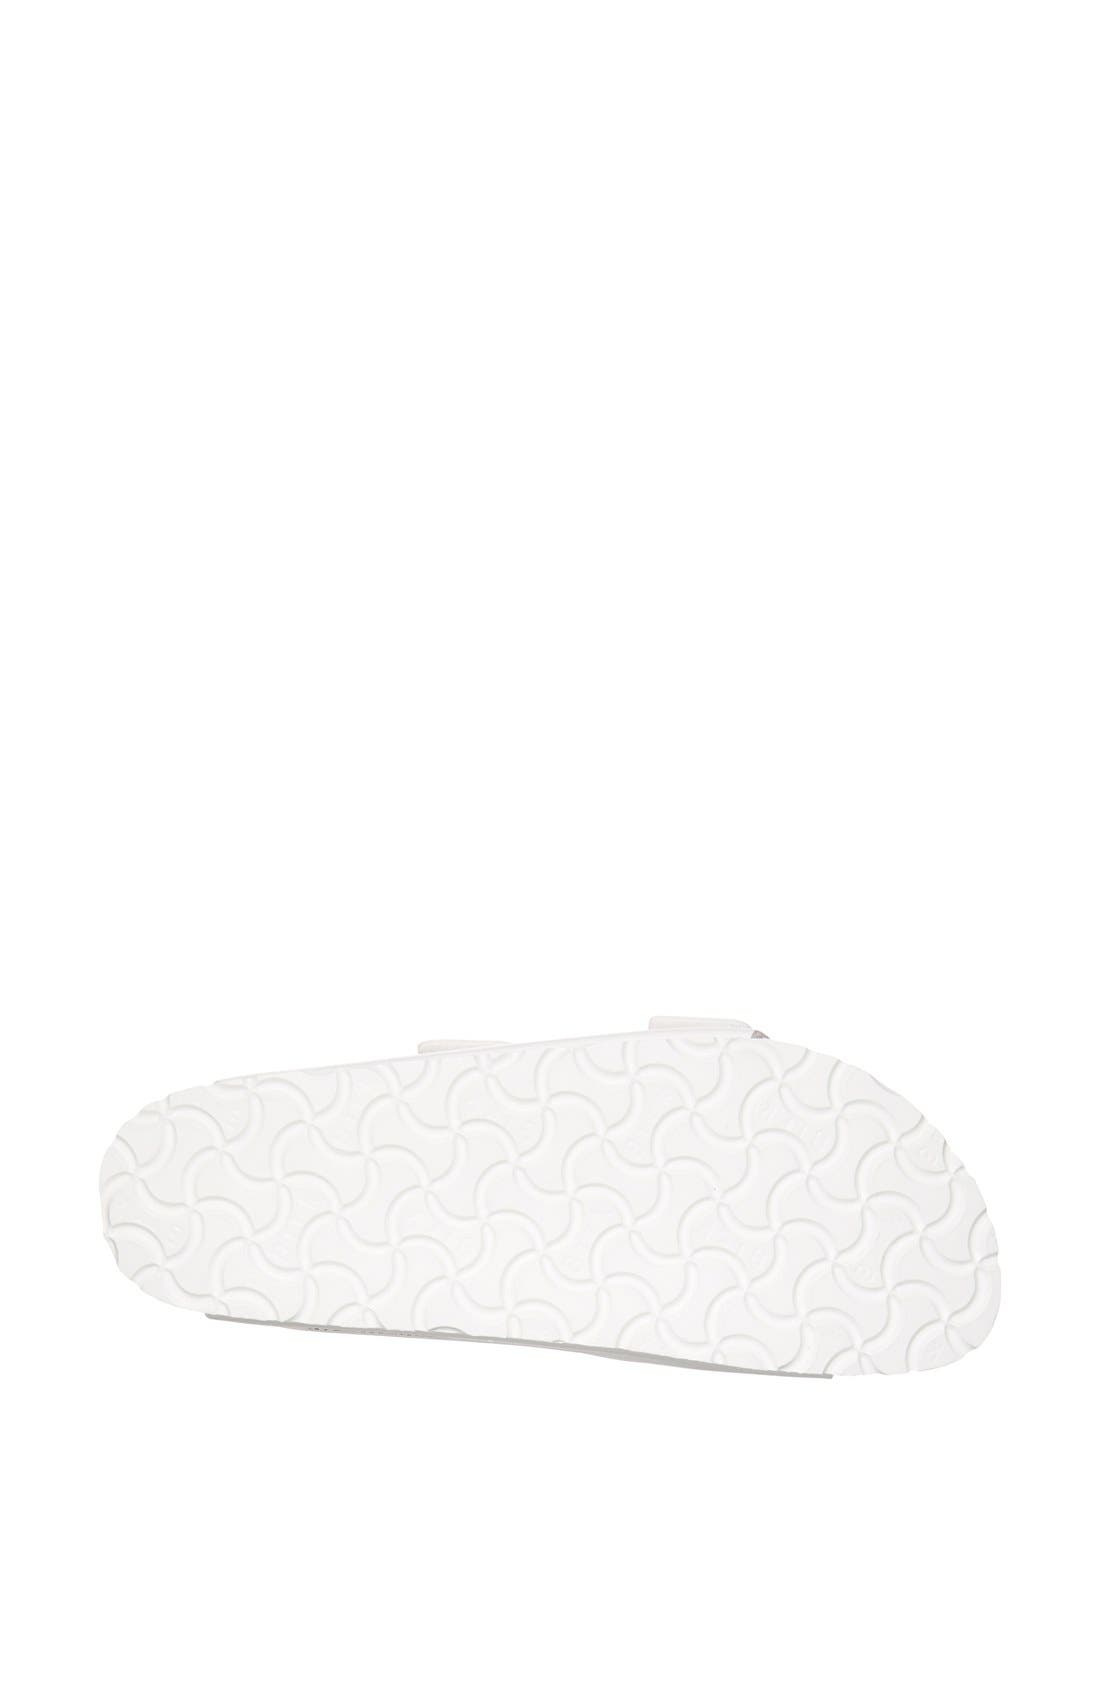 'Arizona' White Birko-Flor Sandal,                             Alternate thumbnail 8, color,                             WHITE SYNTHETIC LEATHER